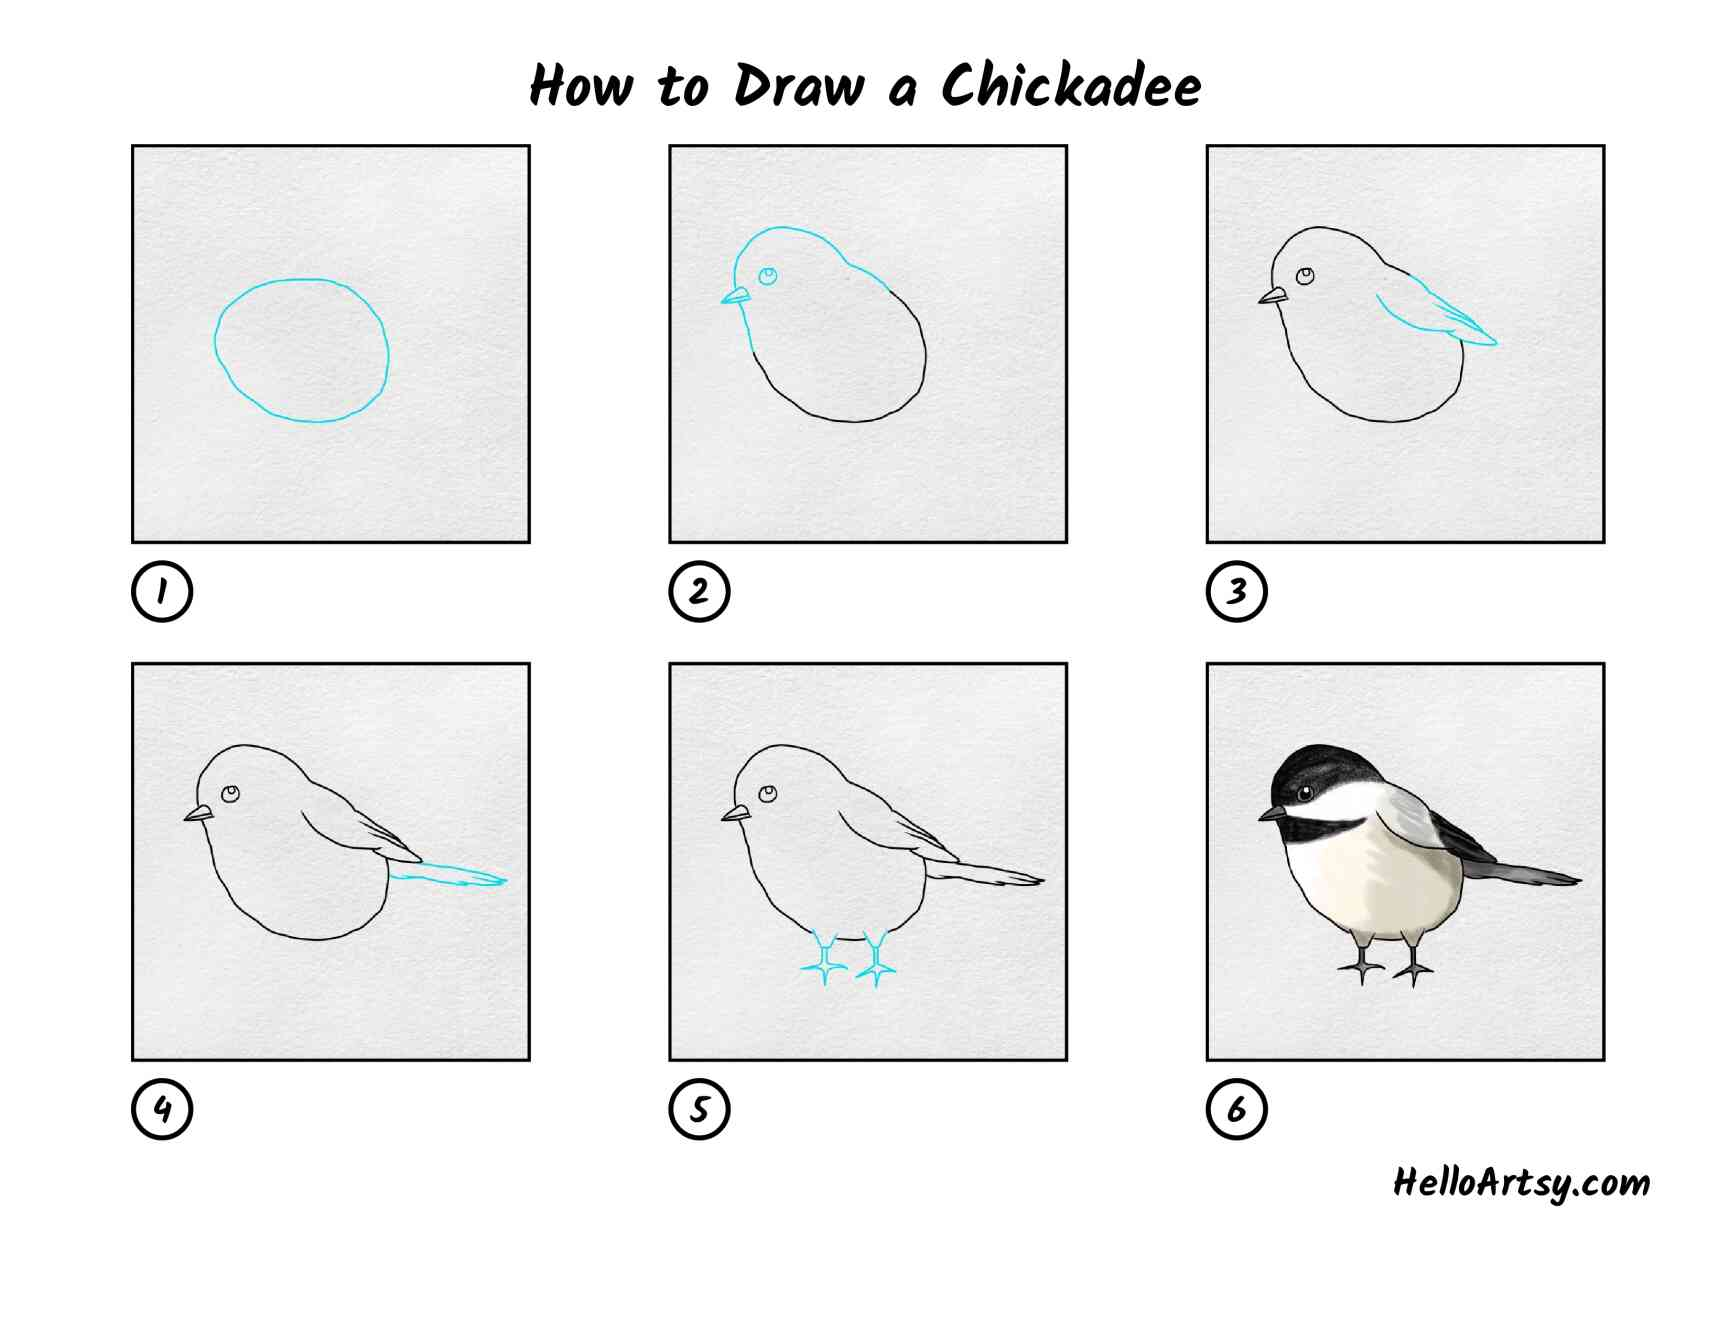 How To Draw Chickadee: All Steps